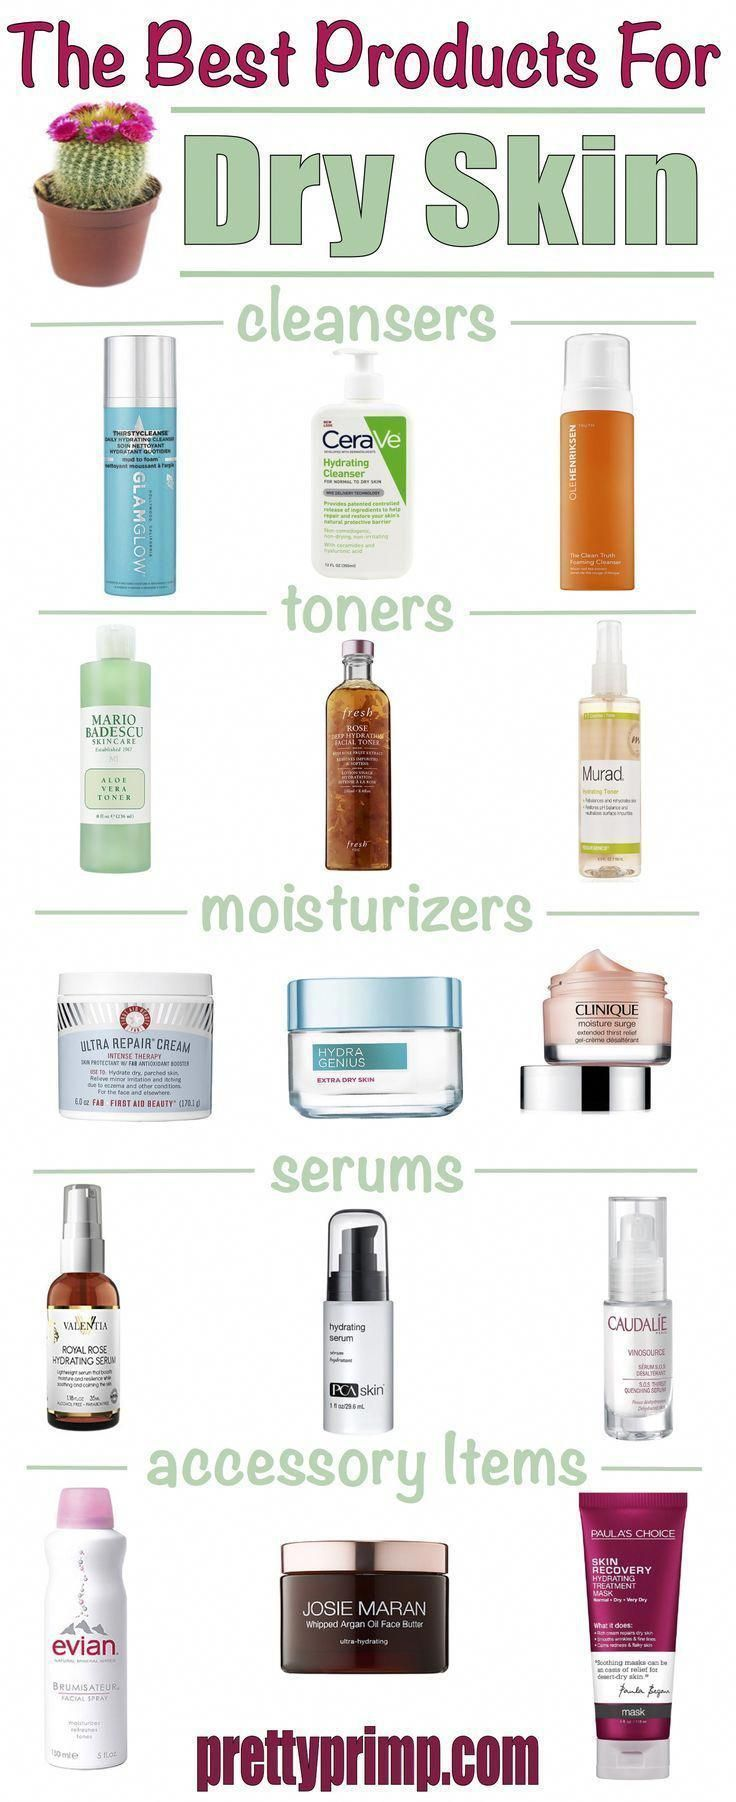 Check Out The Best Products For Dry Skin From The Drugstore And High End These Skincare Products F In 2020 Dry Skin Cleansers Skin Cleanser Products Dry Skin Remedies